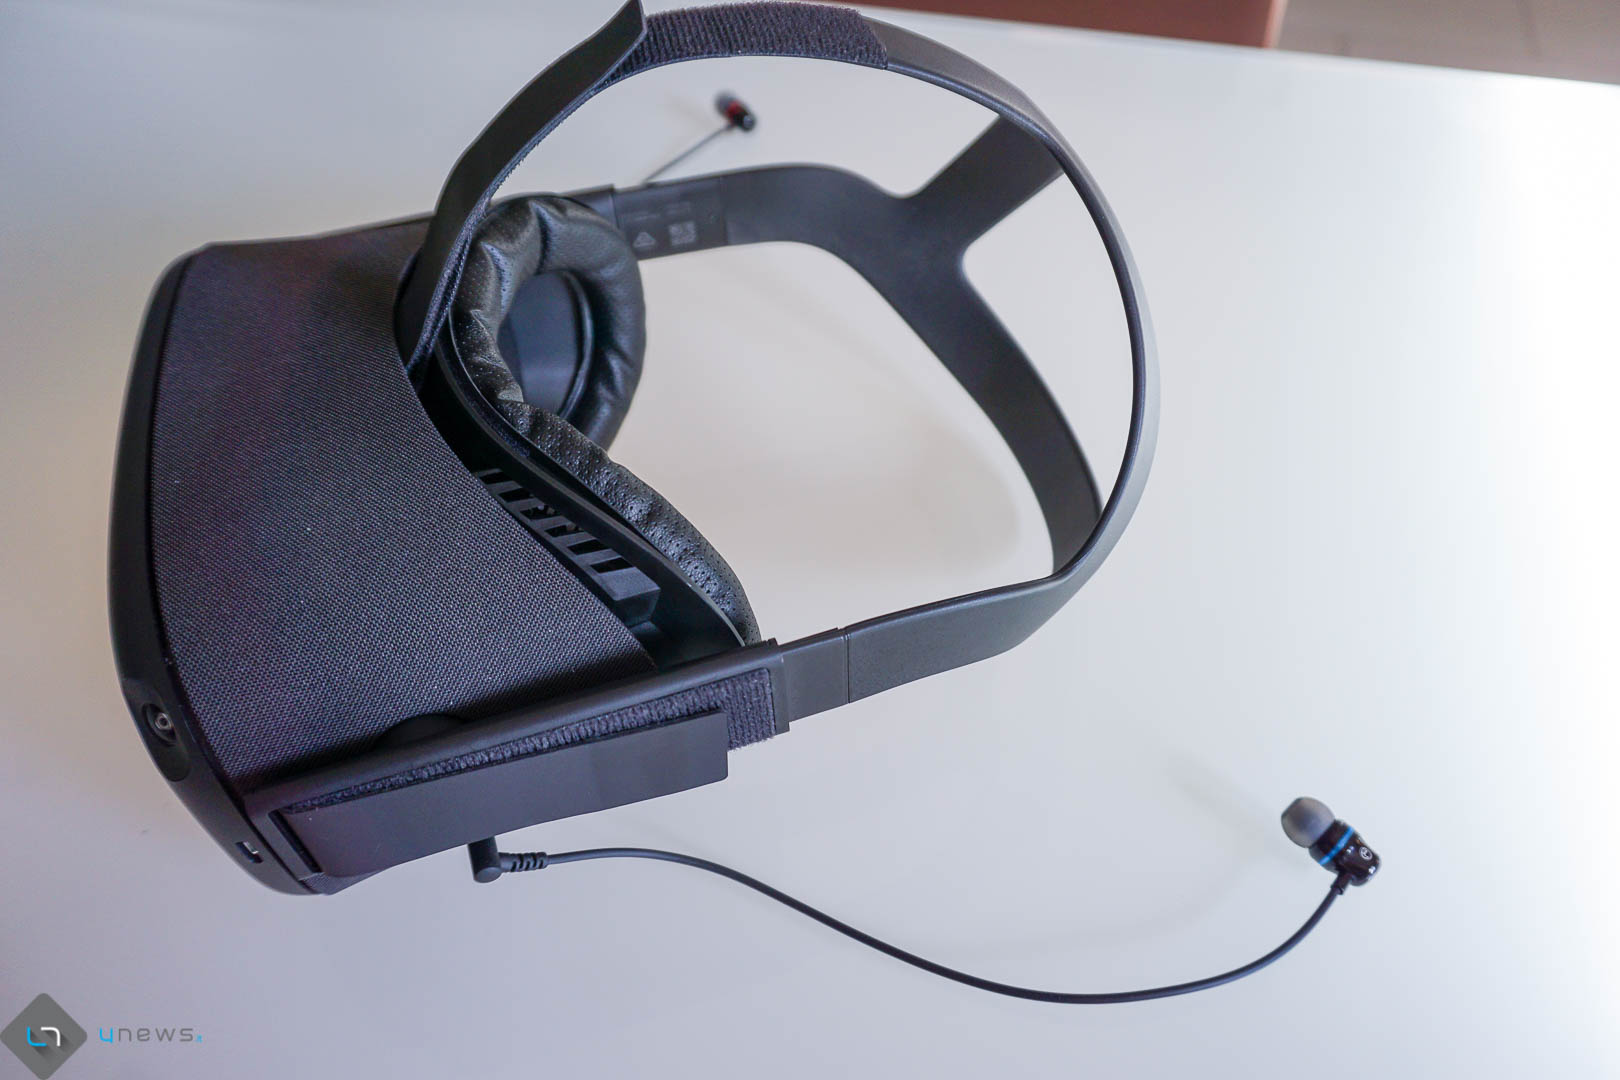 Oculus Quest Kiwi Accessories 12 - Guida agli accessori fondamentali per Oculus Quest